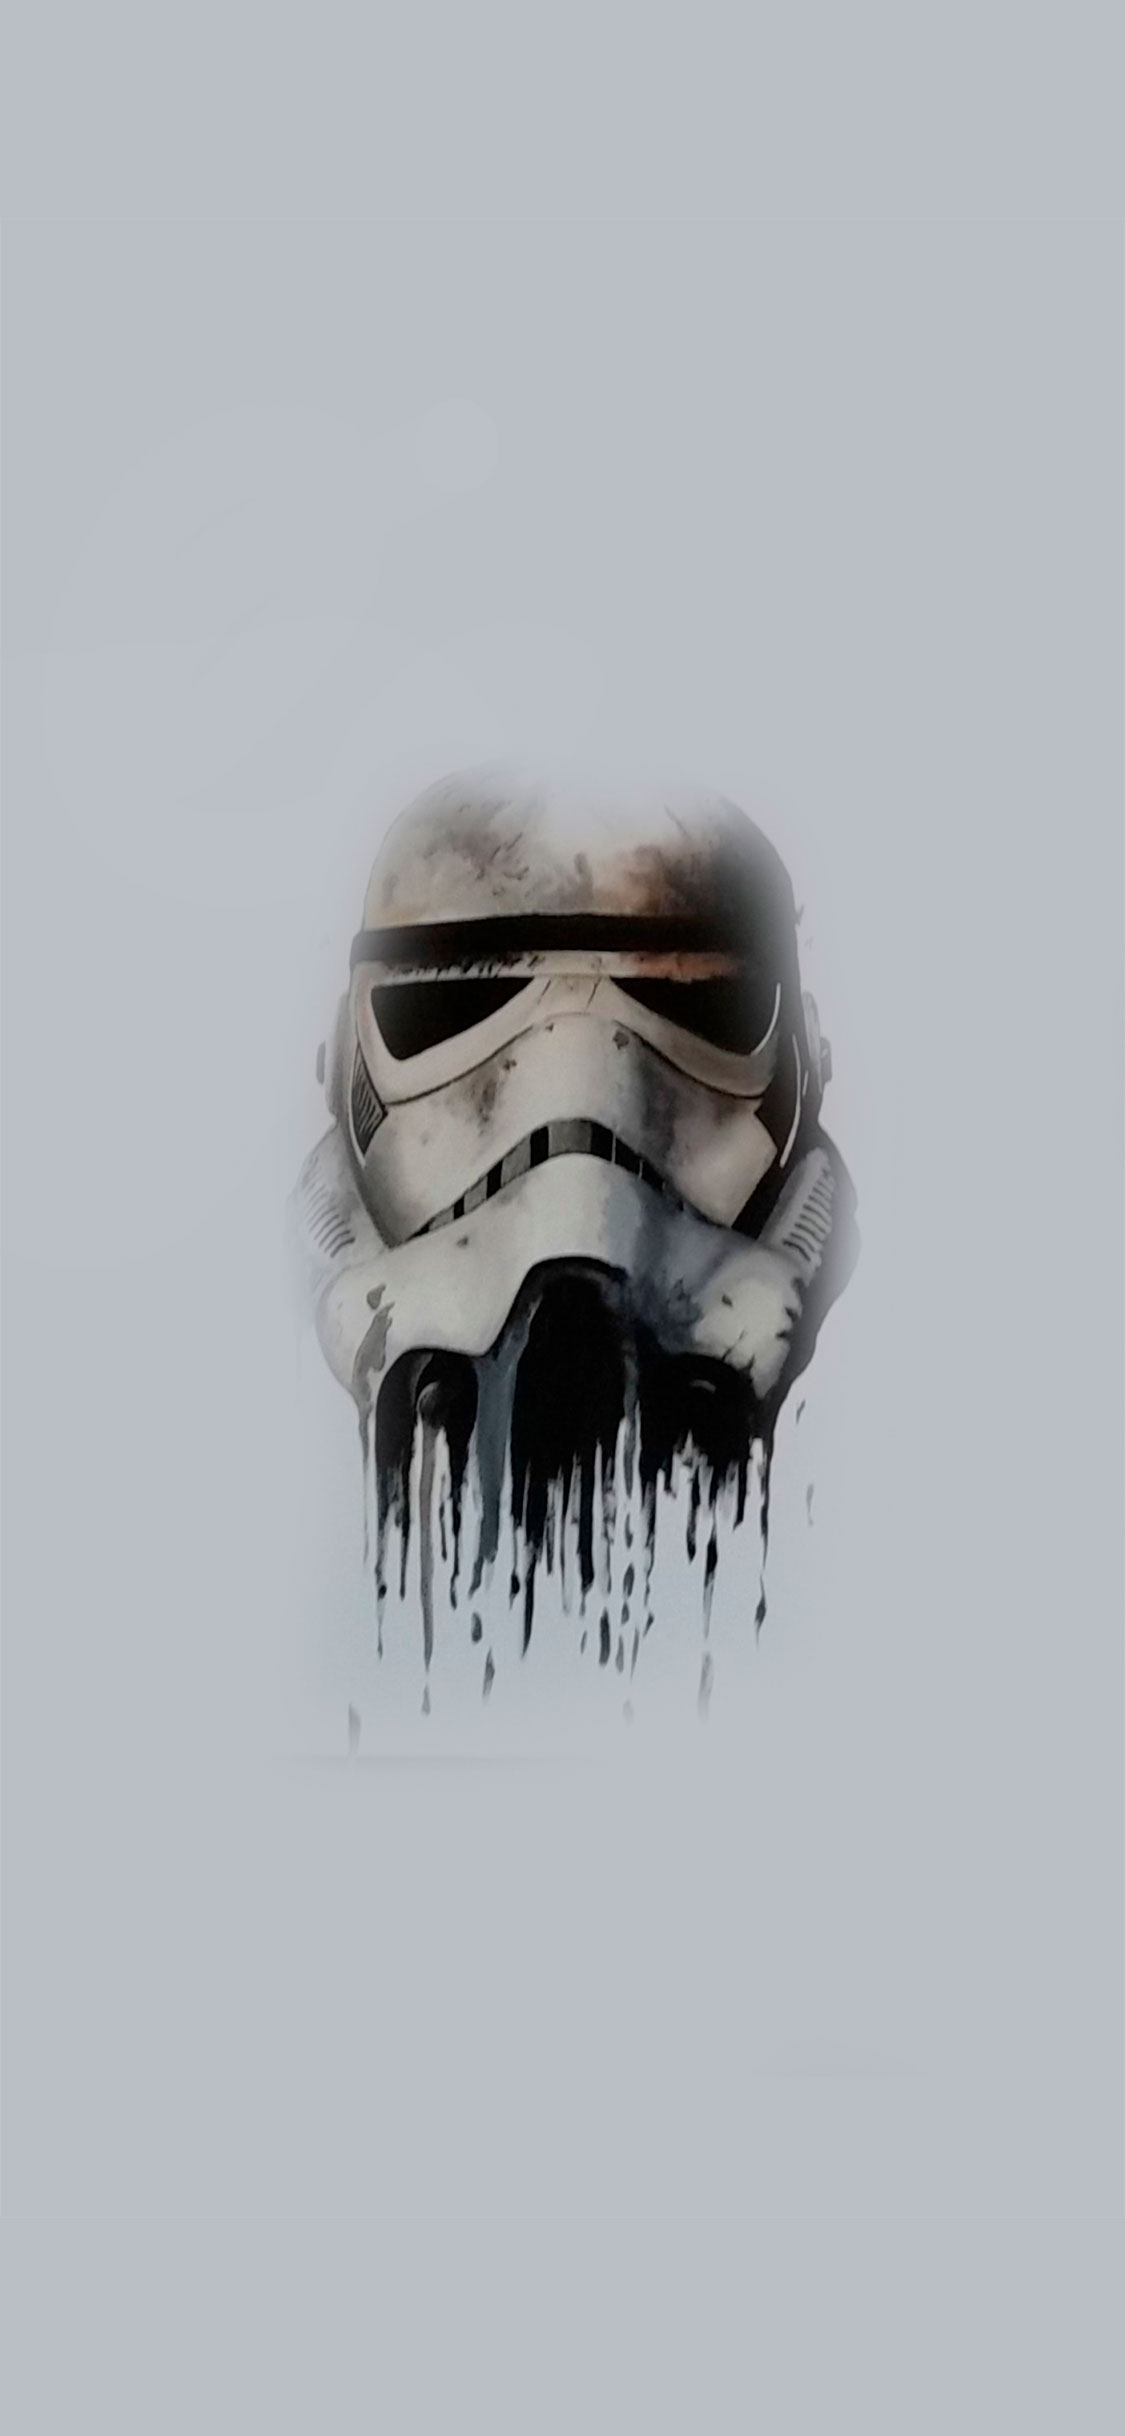 iPhone wallpaper star wars1 Fonds d'écran iPhone du 17/05/2018